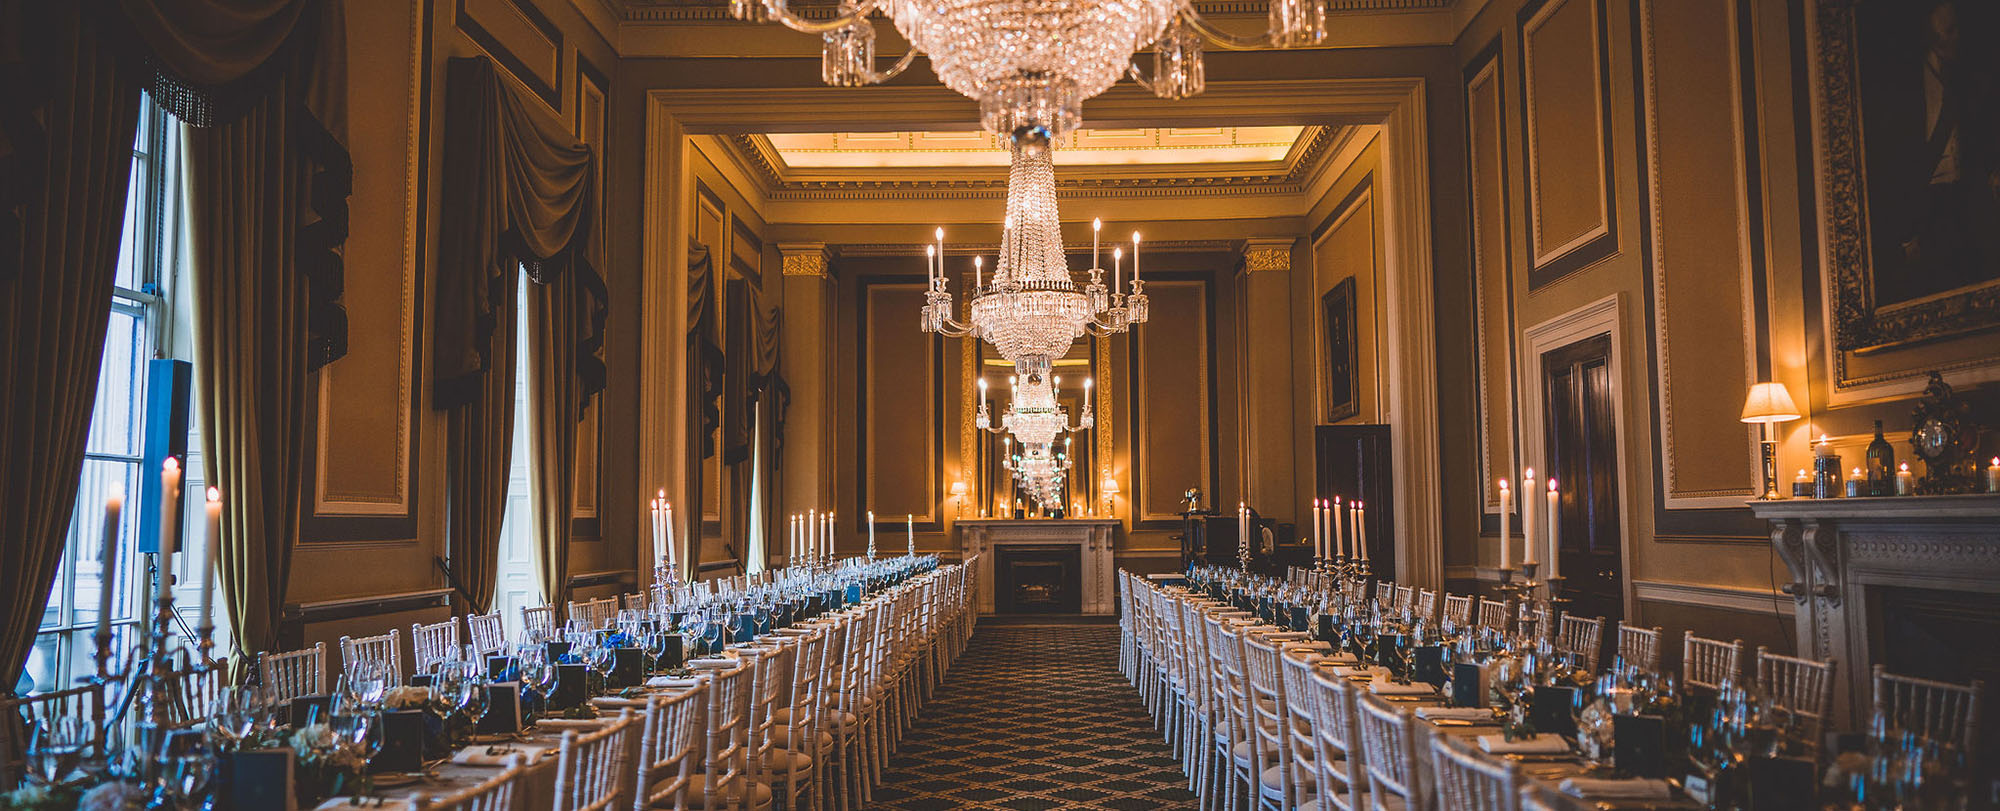 106 Pall Mall Coffee room for event and wedding hire